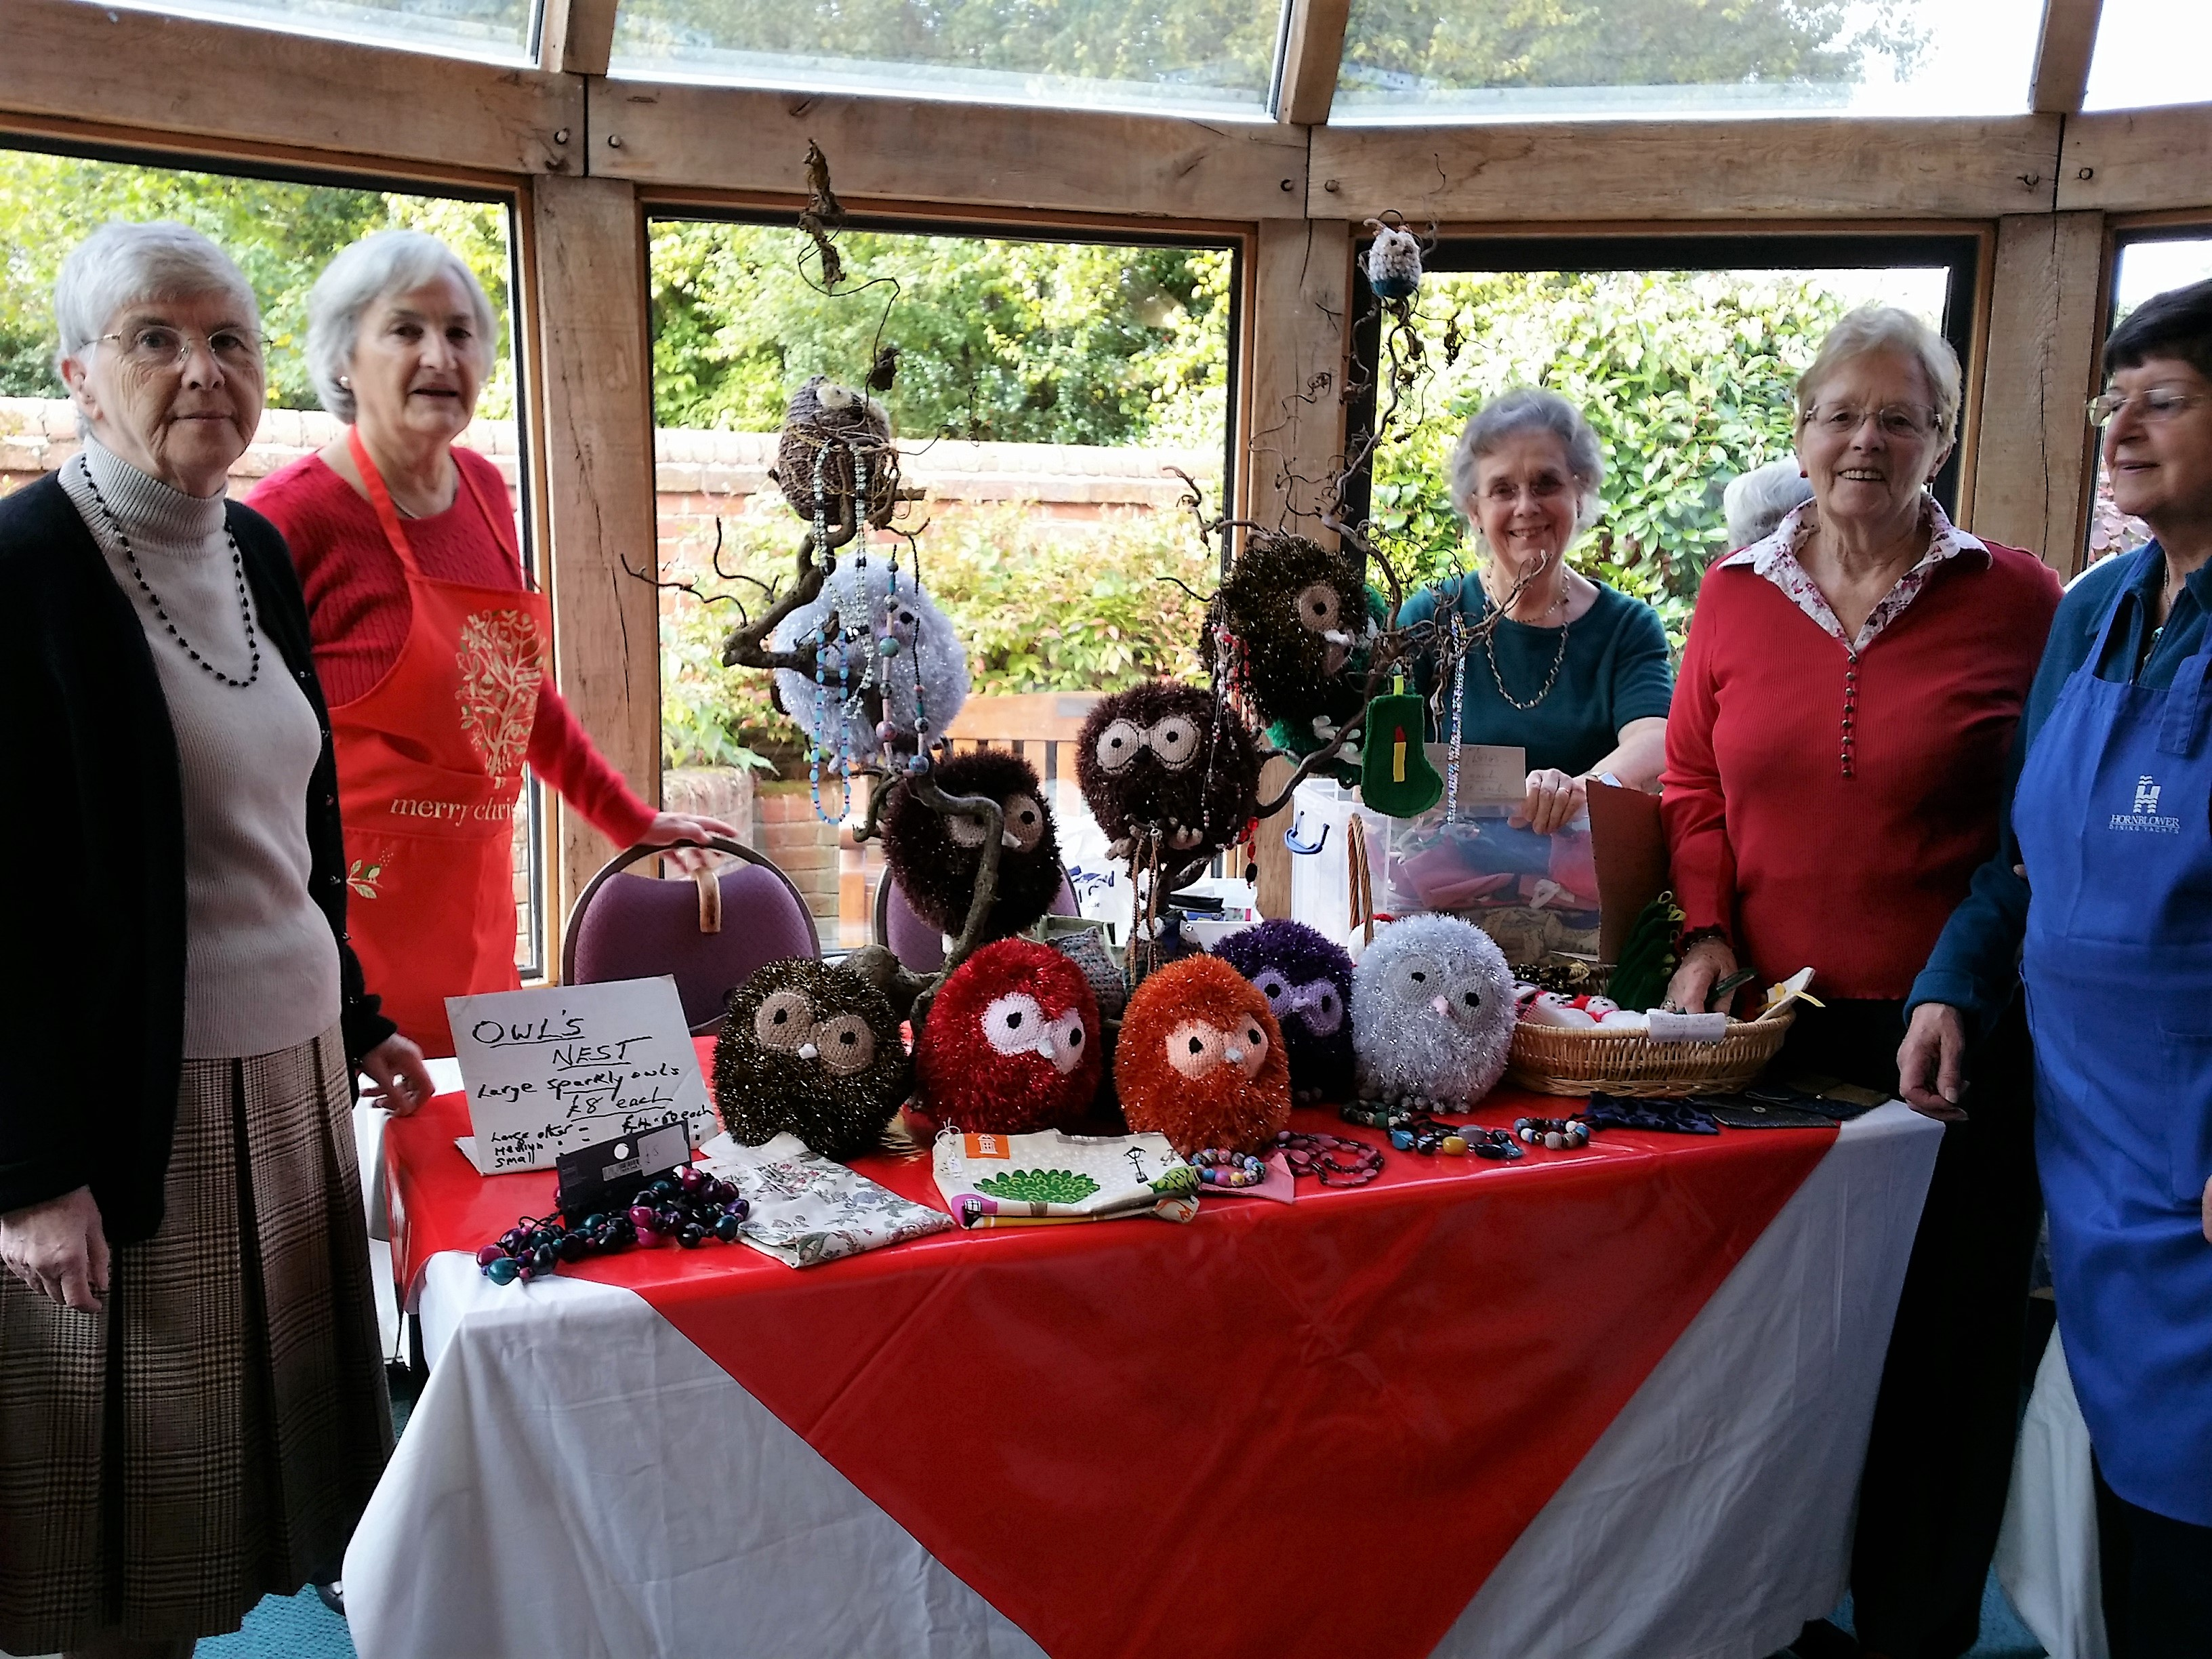 Some of our highy skilled Busy Bee crafters